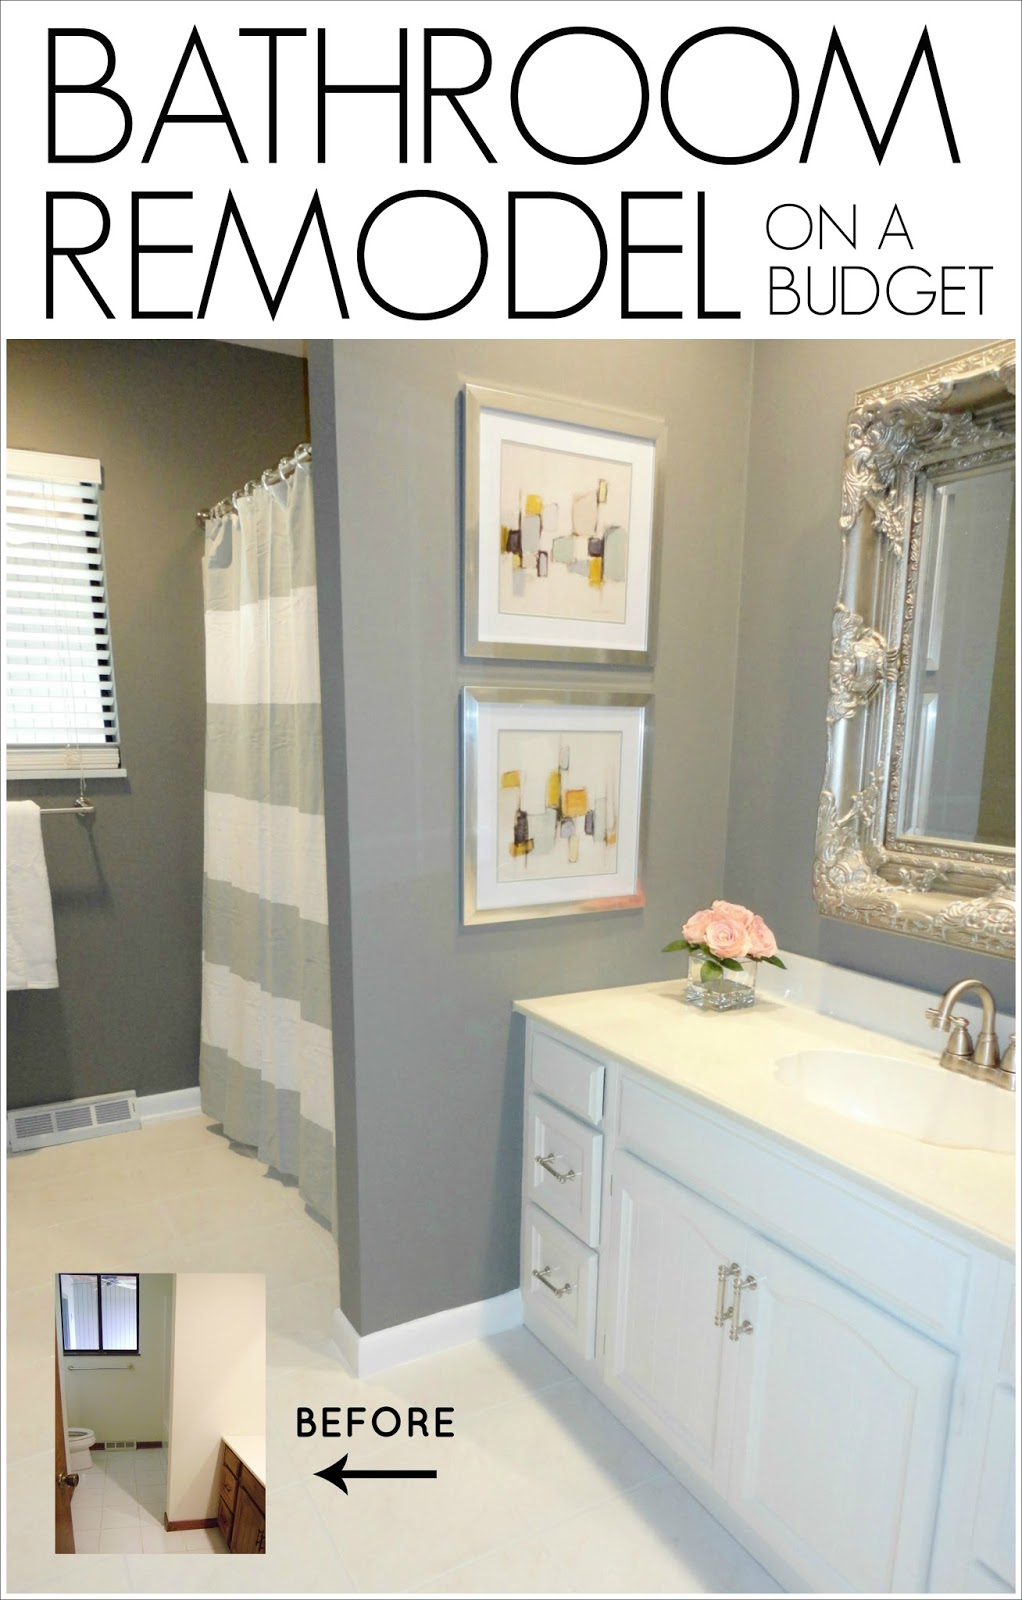 Livelovediy diy bathroom remodel on a budget for Bathroom ideas on a budget